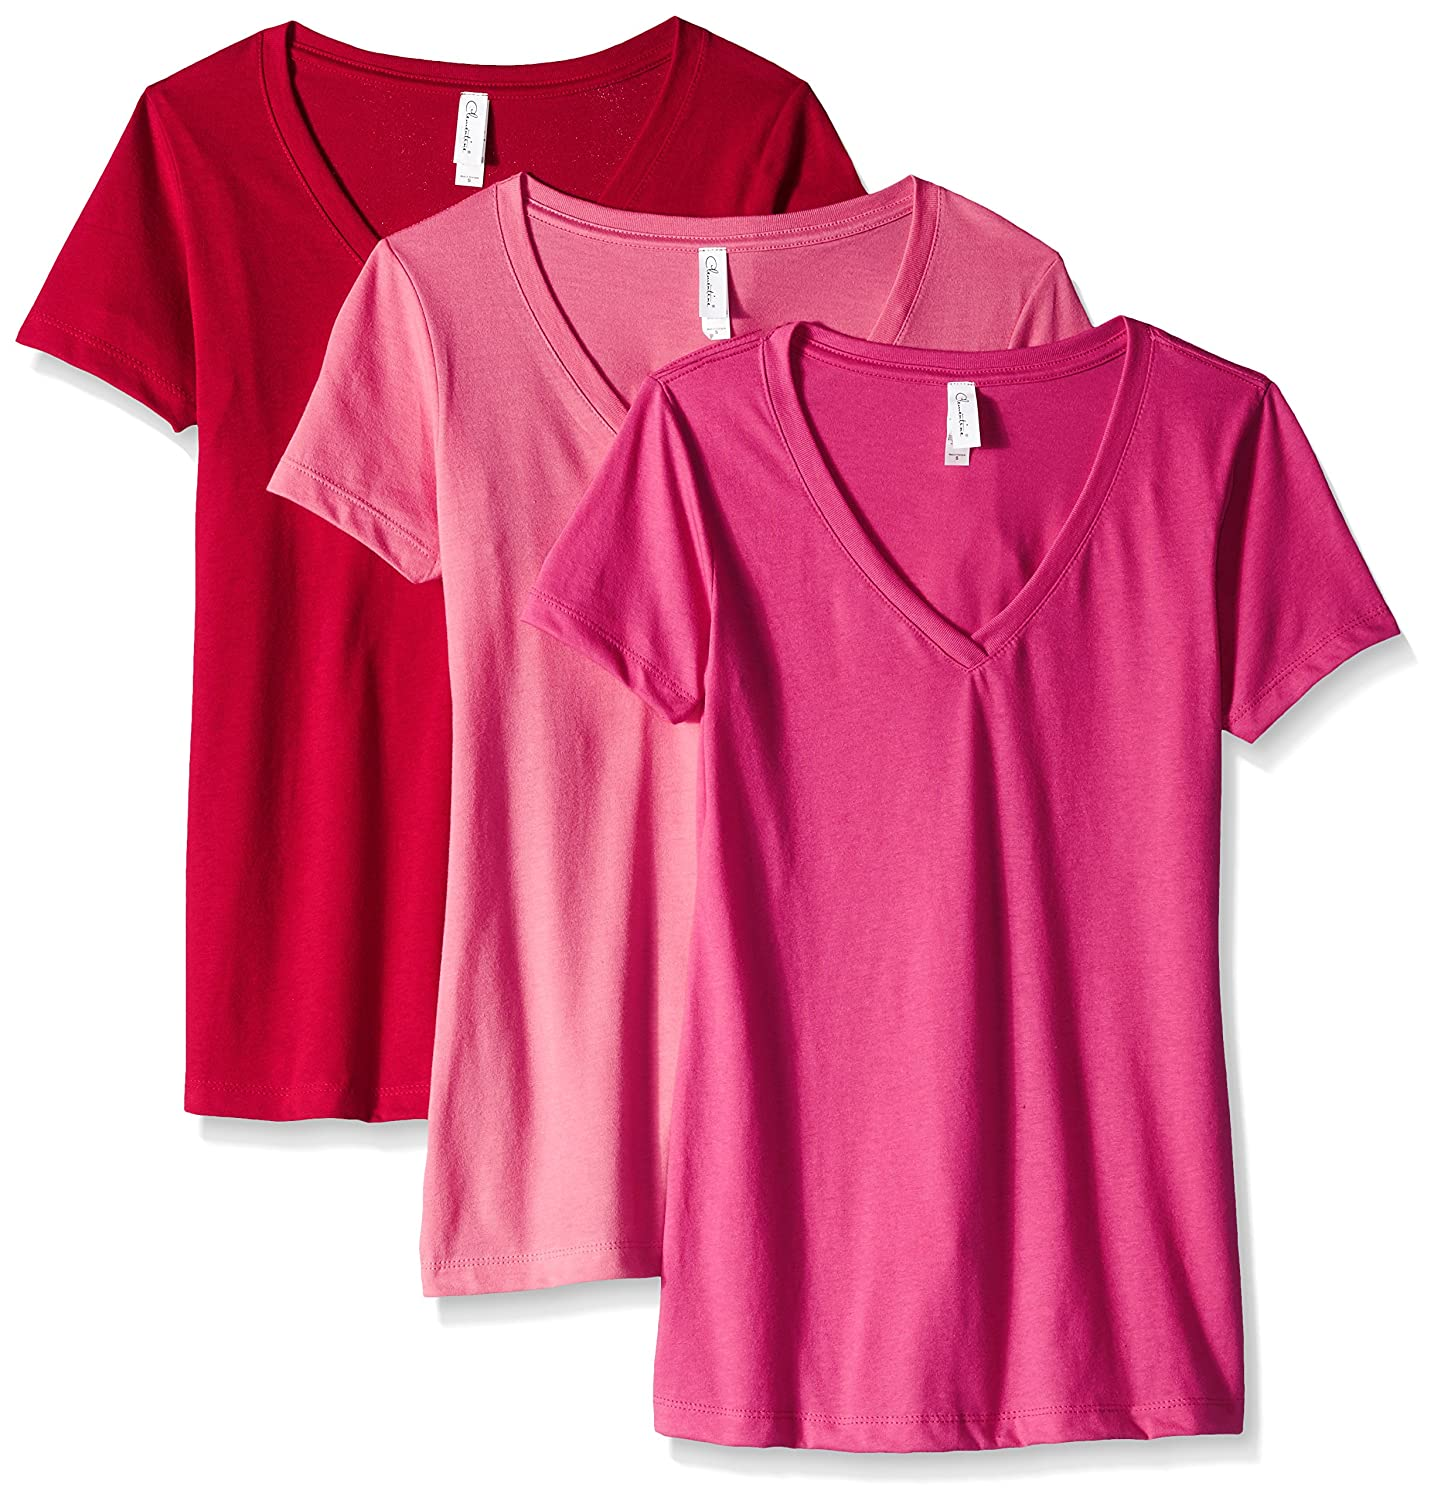 Clementine Apparel Womens Petite-Plus-Size Ideal V-Neck T-Shirt (Pack of 3) Clementine Womens Child Code 3-CLM1540